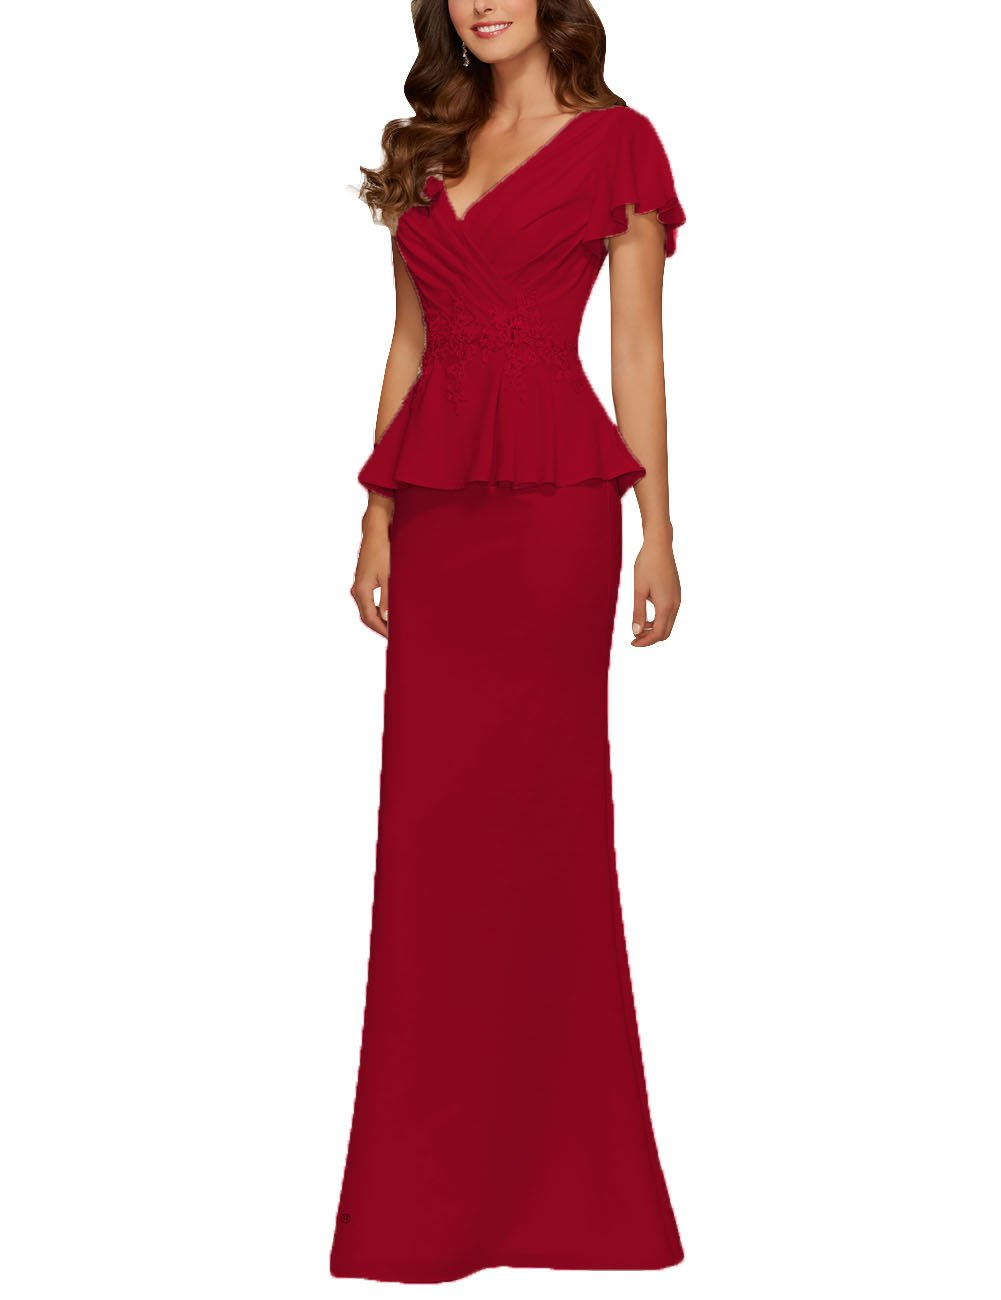 91e36b64af8 ... Women s Chiffon Mother of The Bride Dresses Beads Applique Peplum Prom  Evening Gowns Burgundy US 10.   